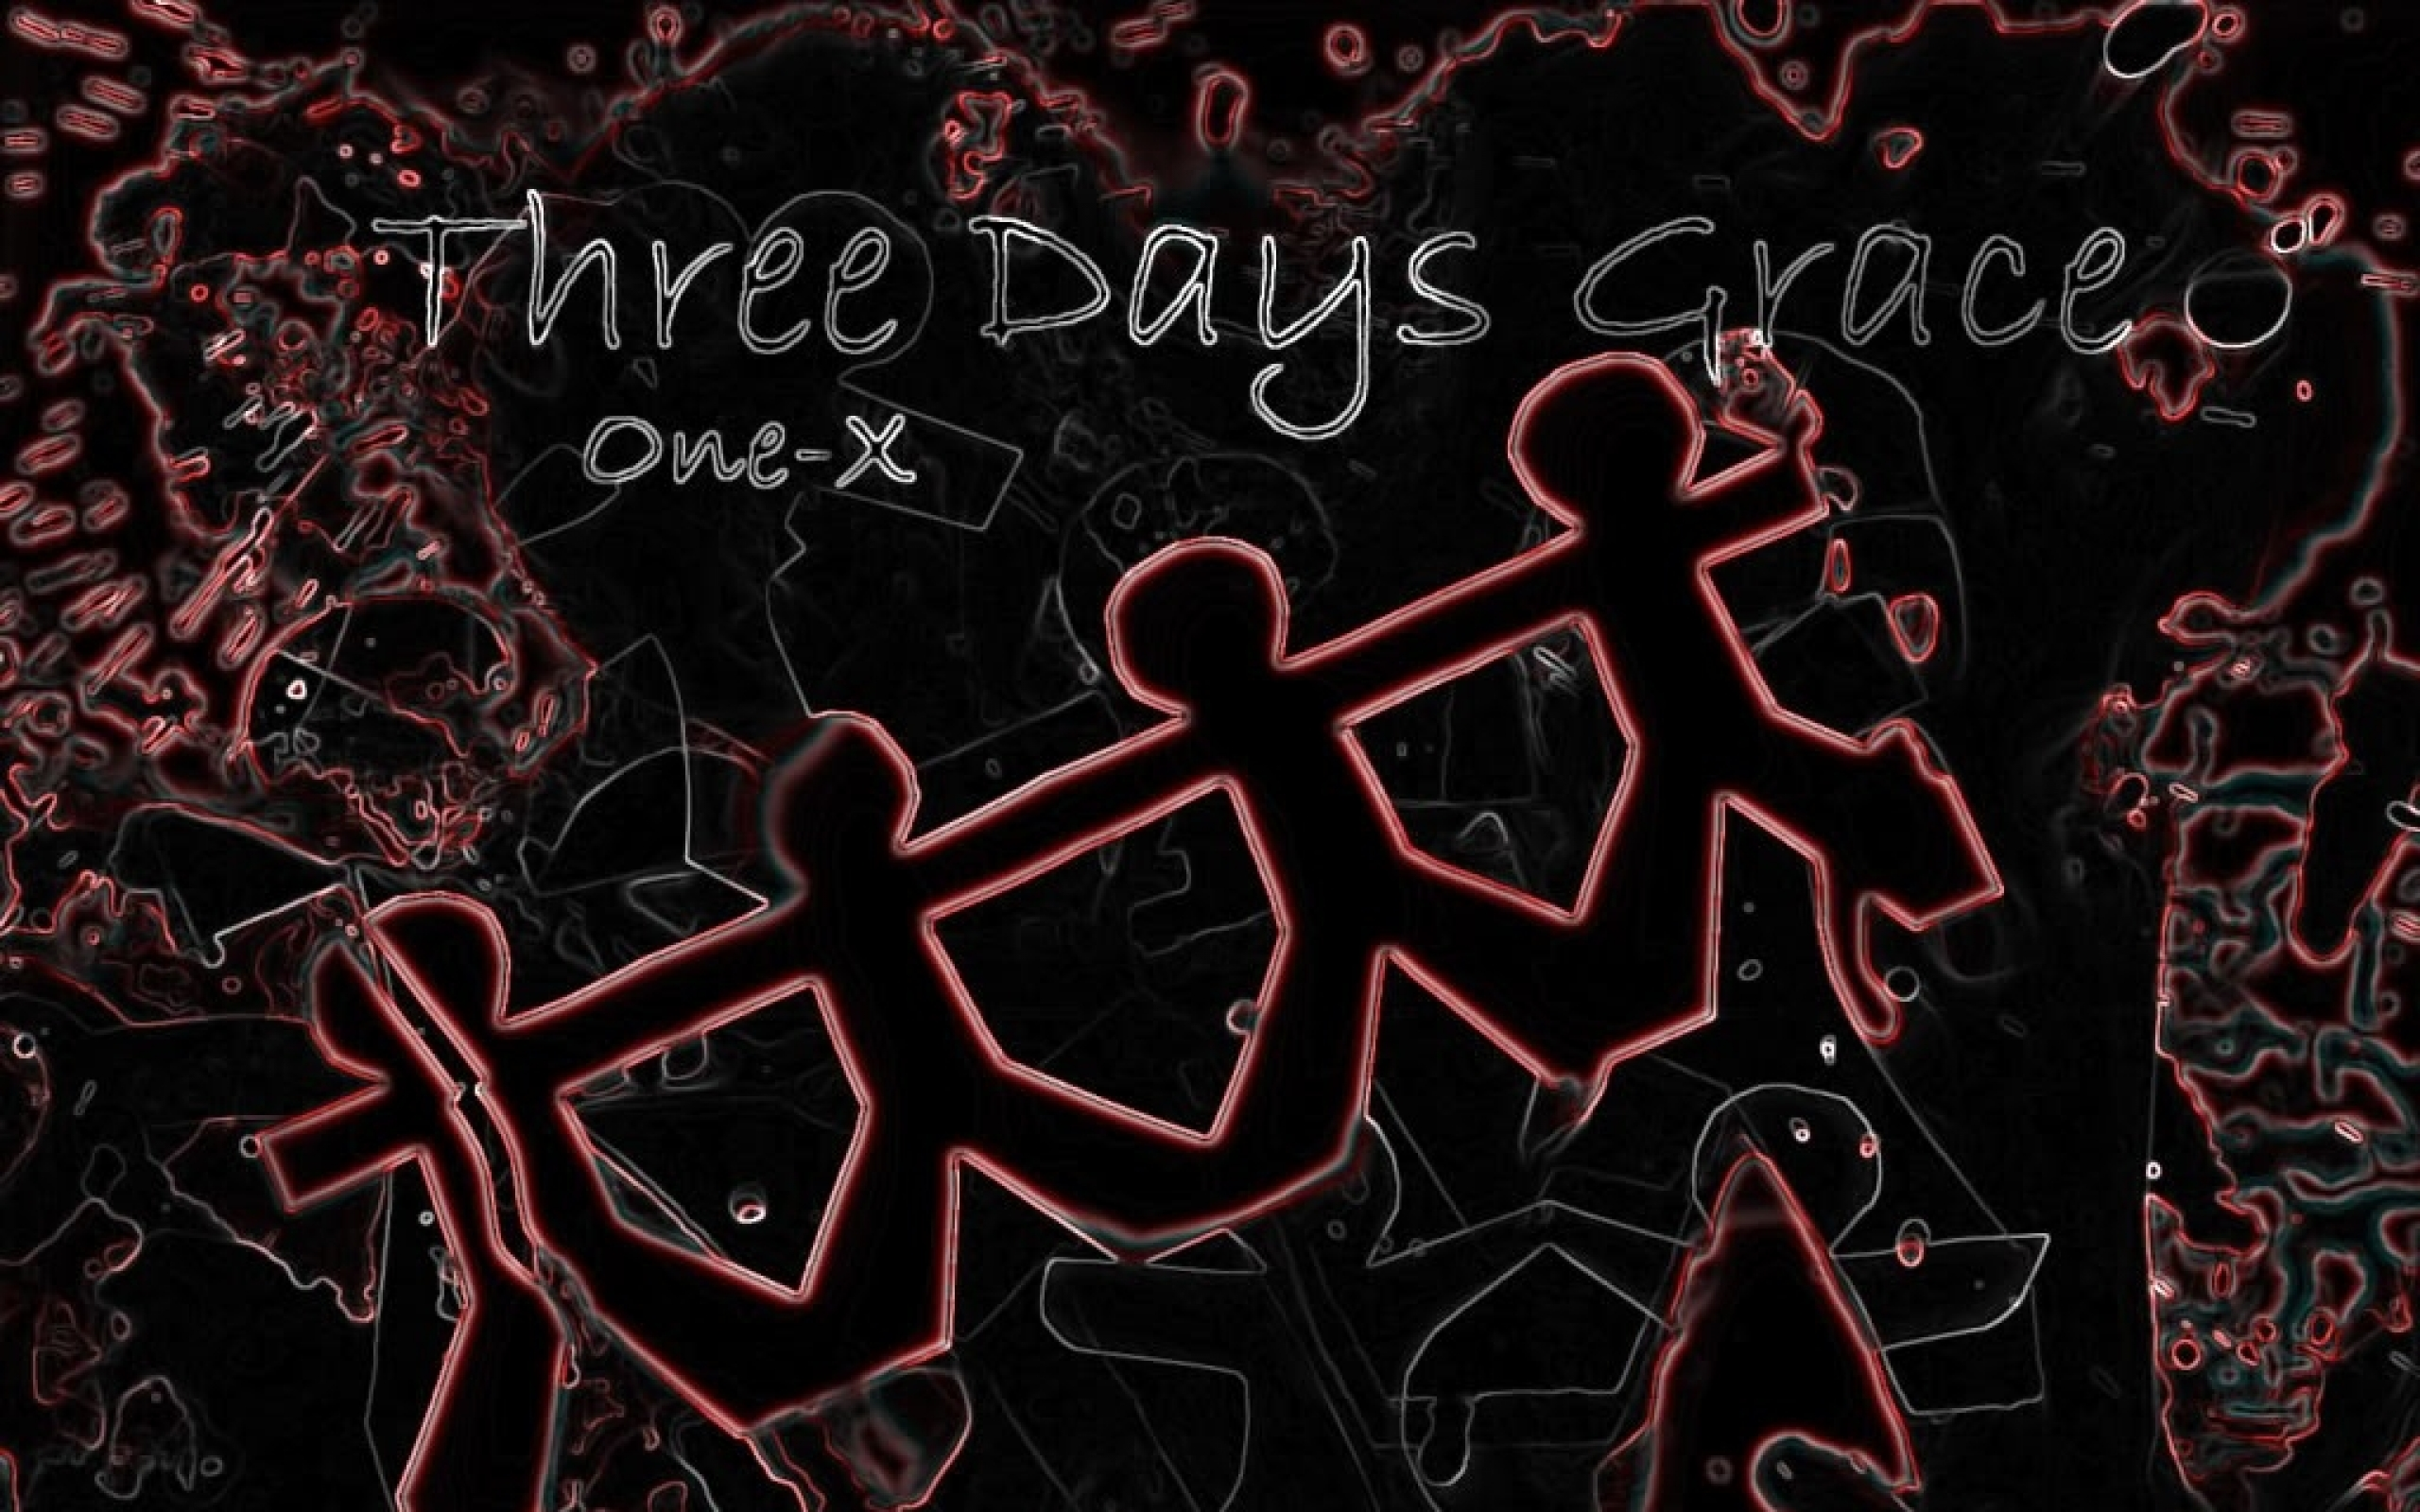 three days grace desktop wallpaper   wwwhigh definition wallpapercom 2560x1600